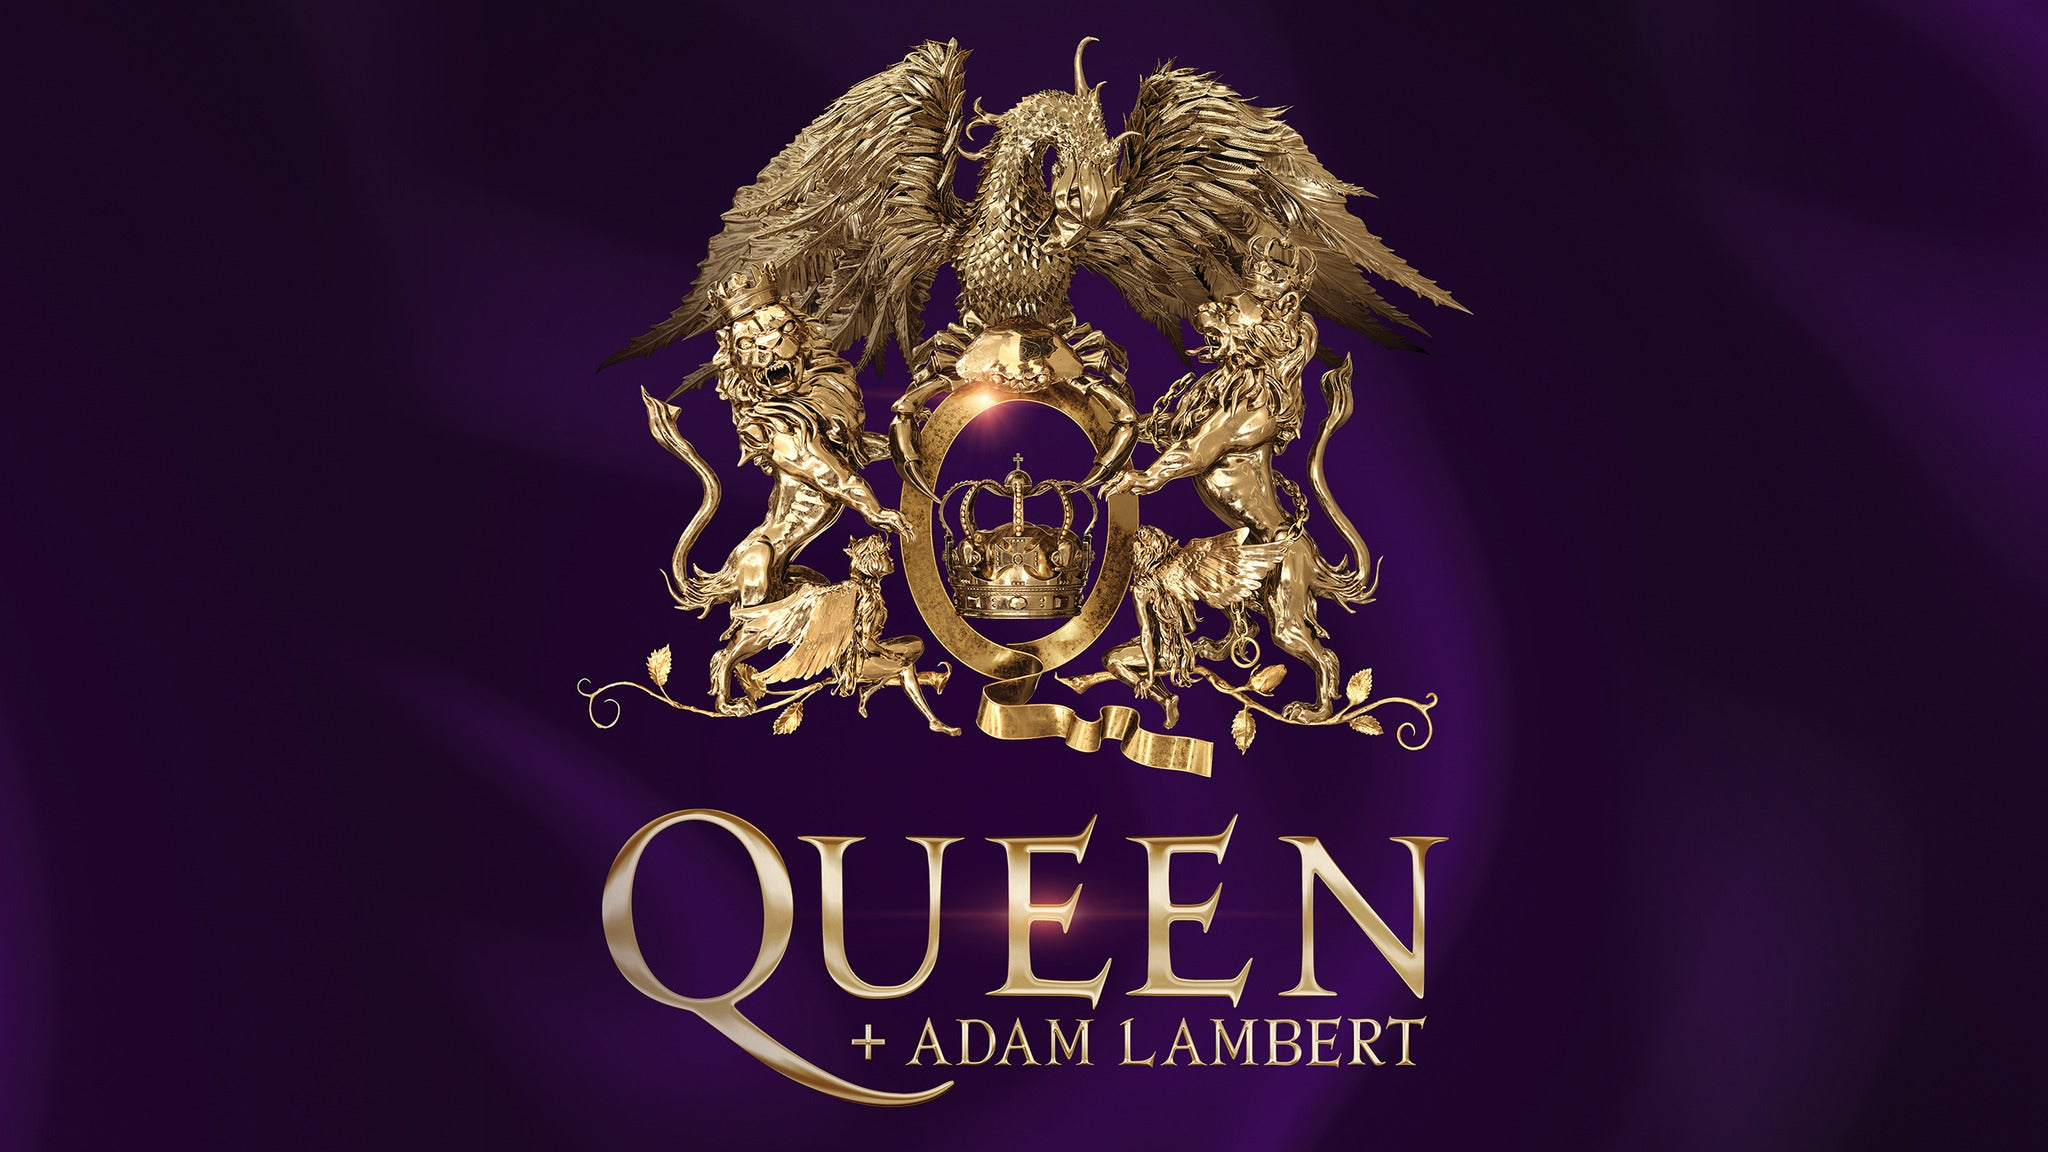 adam lambert queen oscars 2020